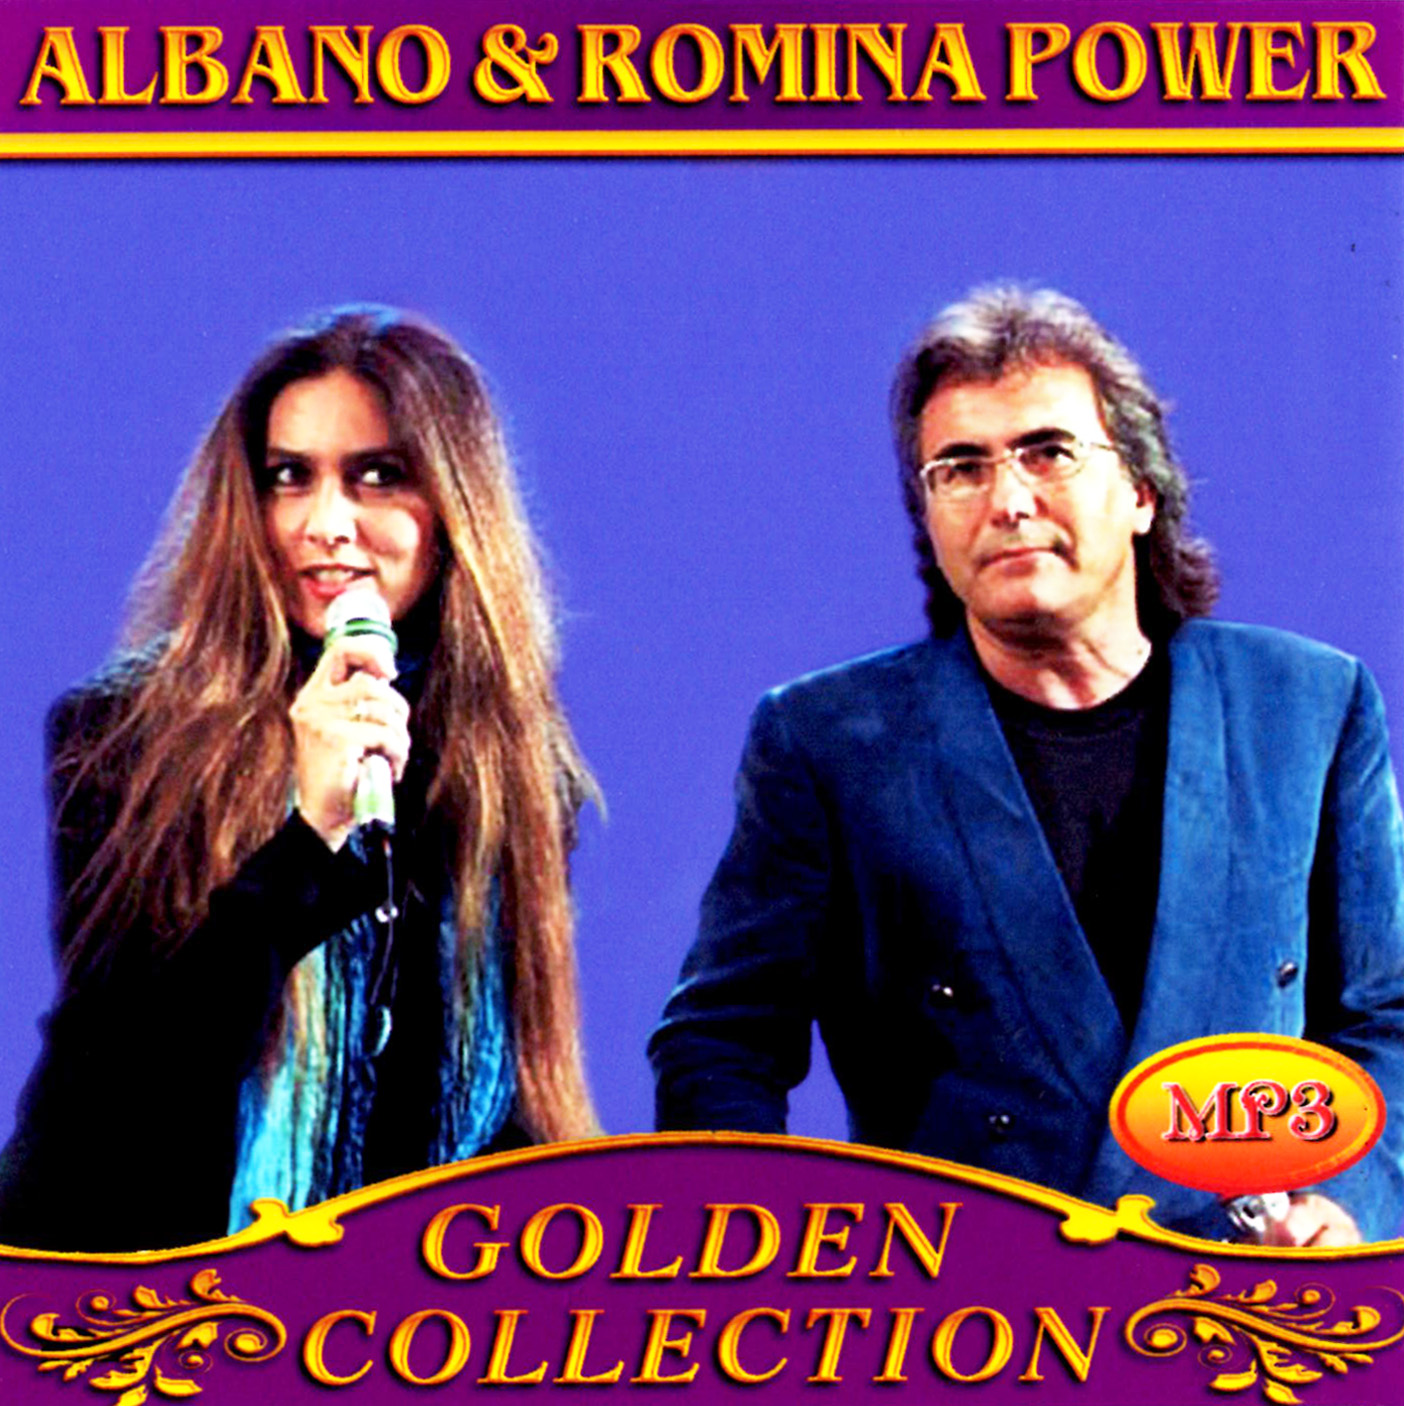 Al Bano & Romina Power [mp3]